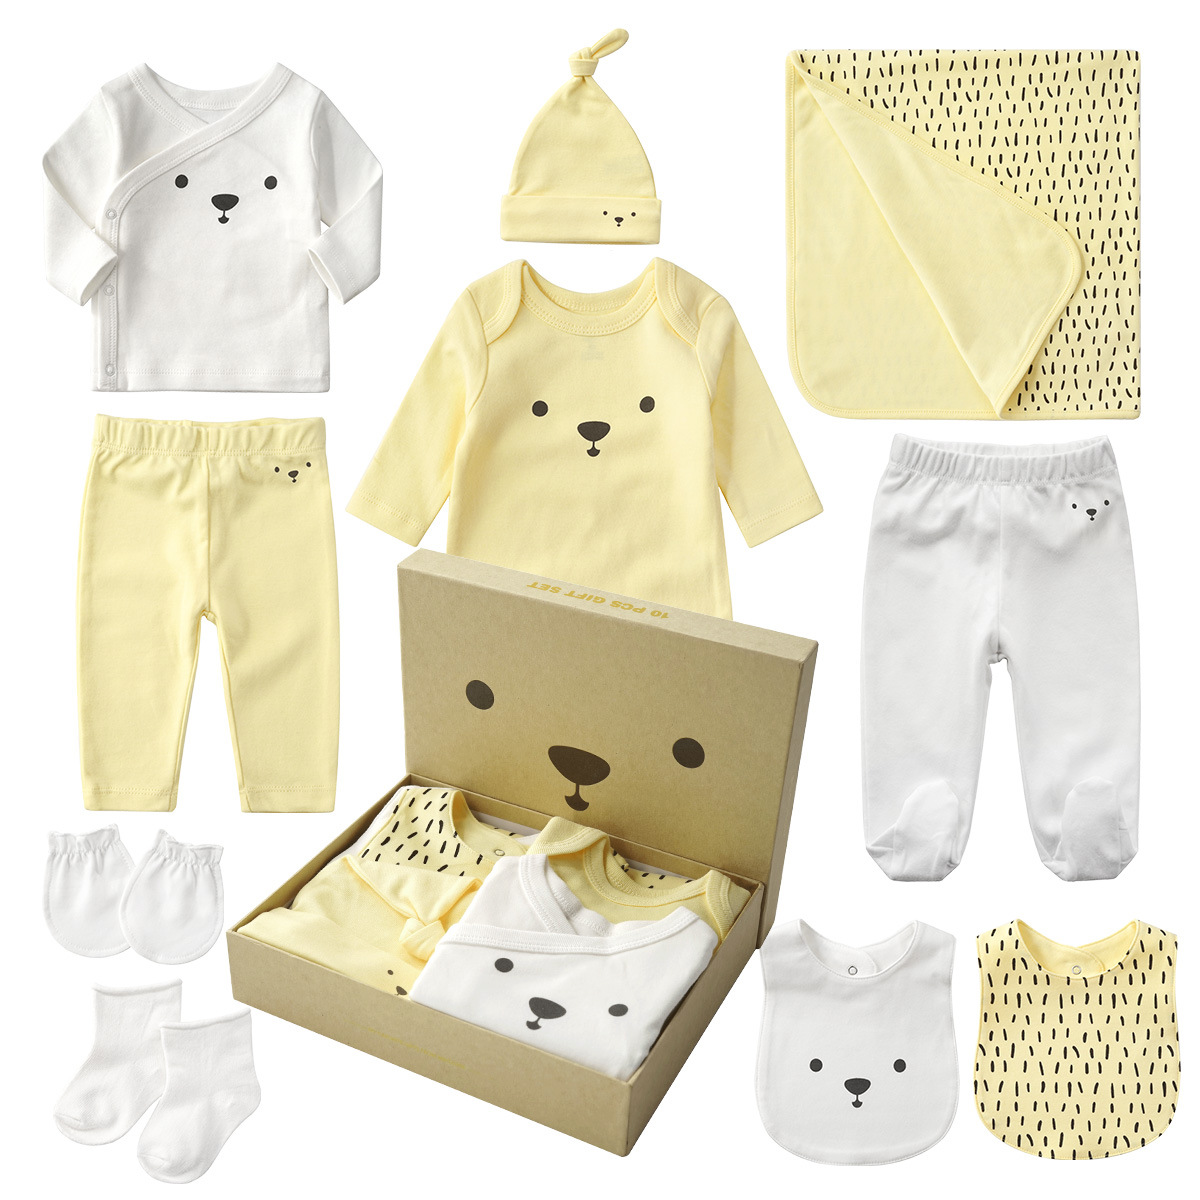 Cotton 10-piece Sets Newborn Clothes Gift Box Spring And Autumn New Born Baby Suit Mother And Baby Full Moon Kids Gift Clothes 10pcs baby products boy and girls full moon fashion sets spring and autumn baby best gift newborn baby clothes unisex set cotton